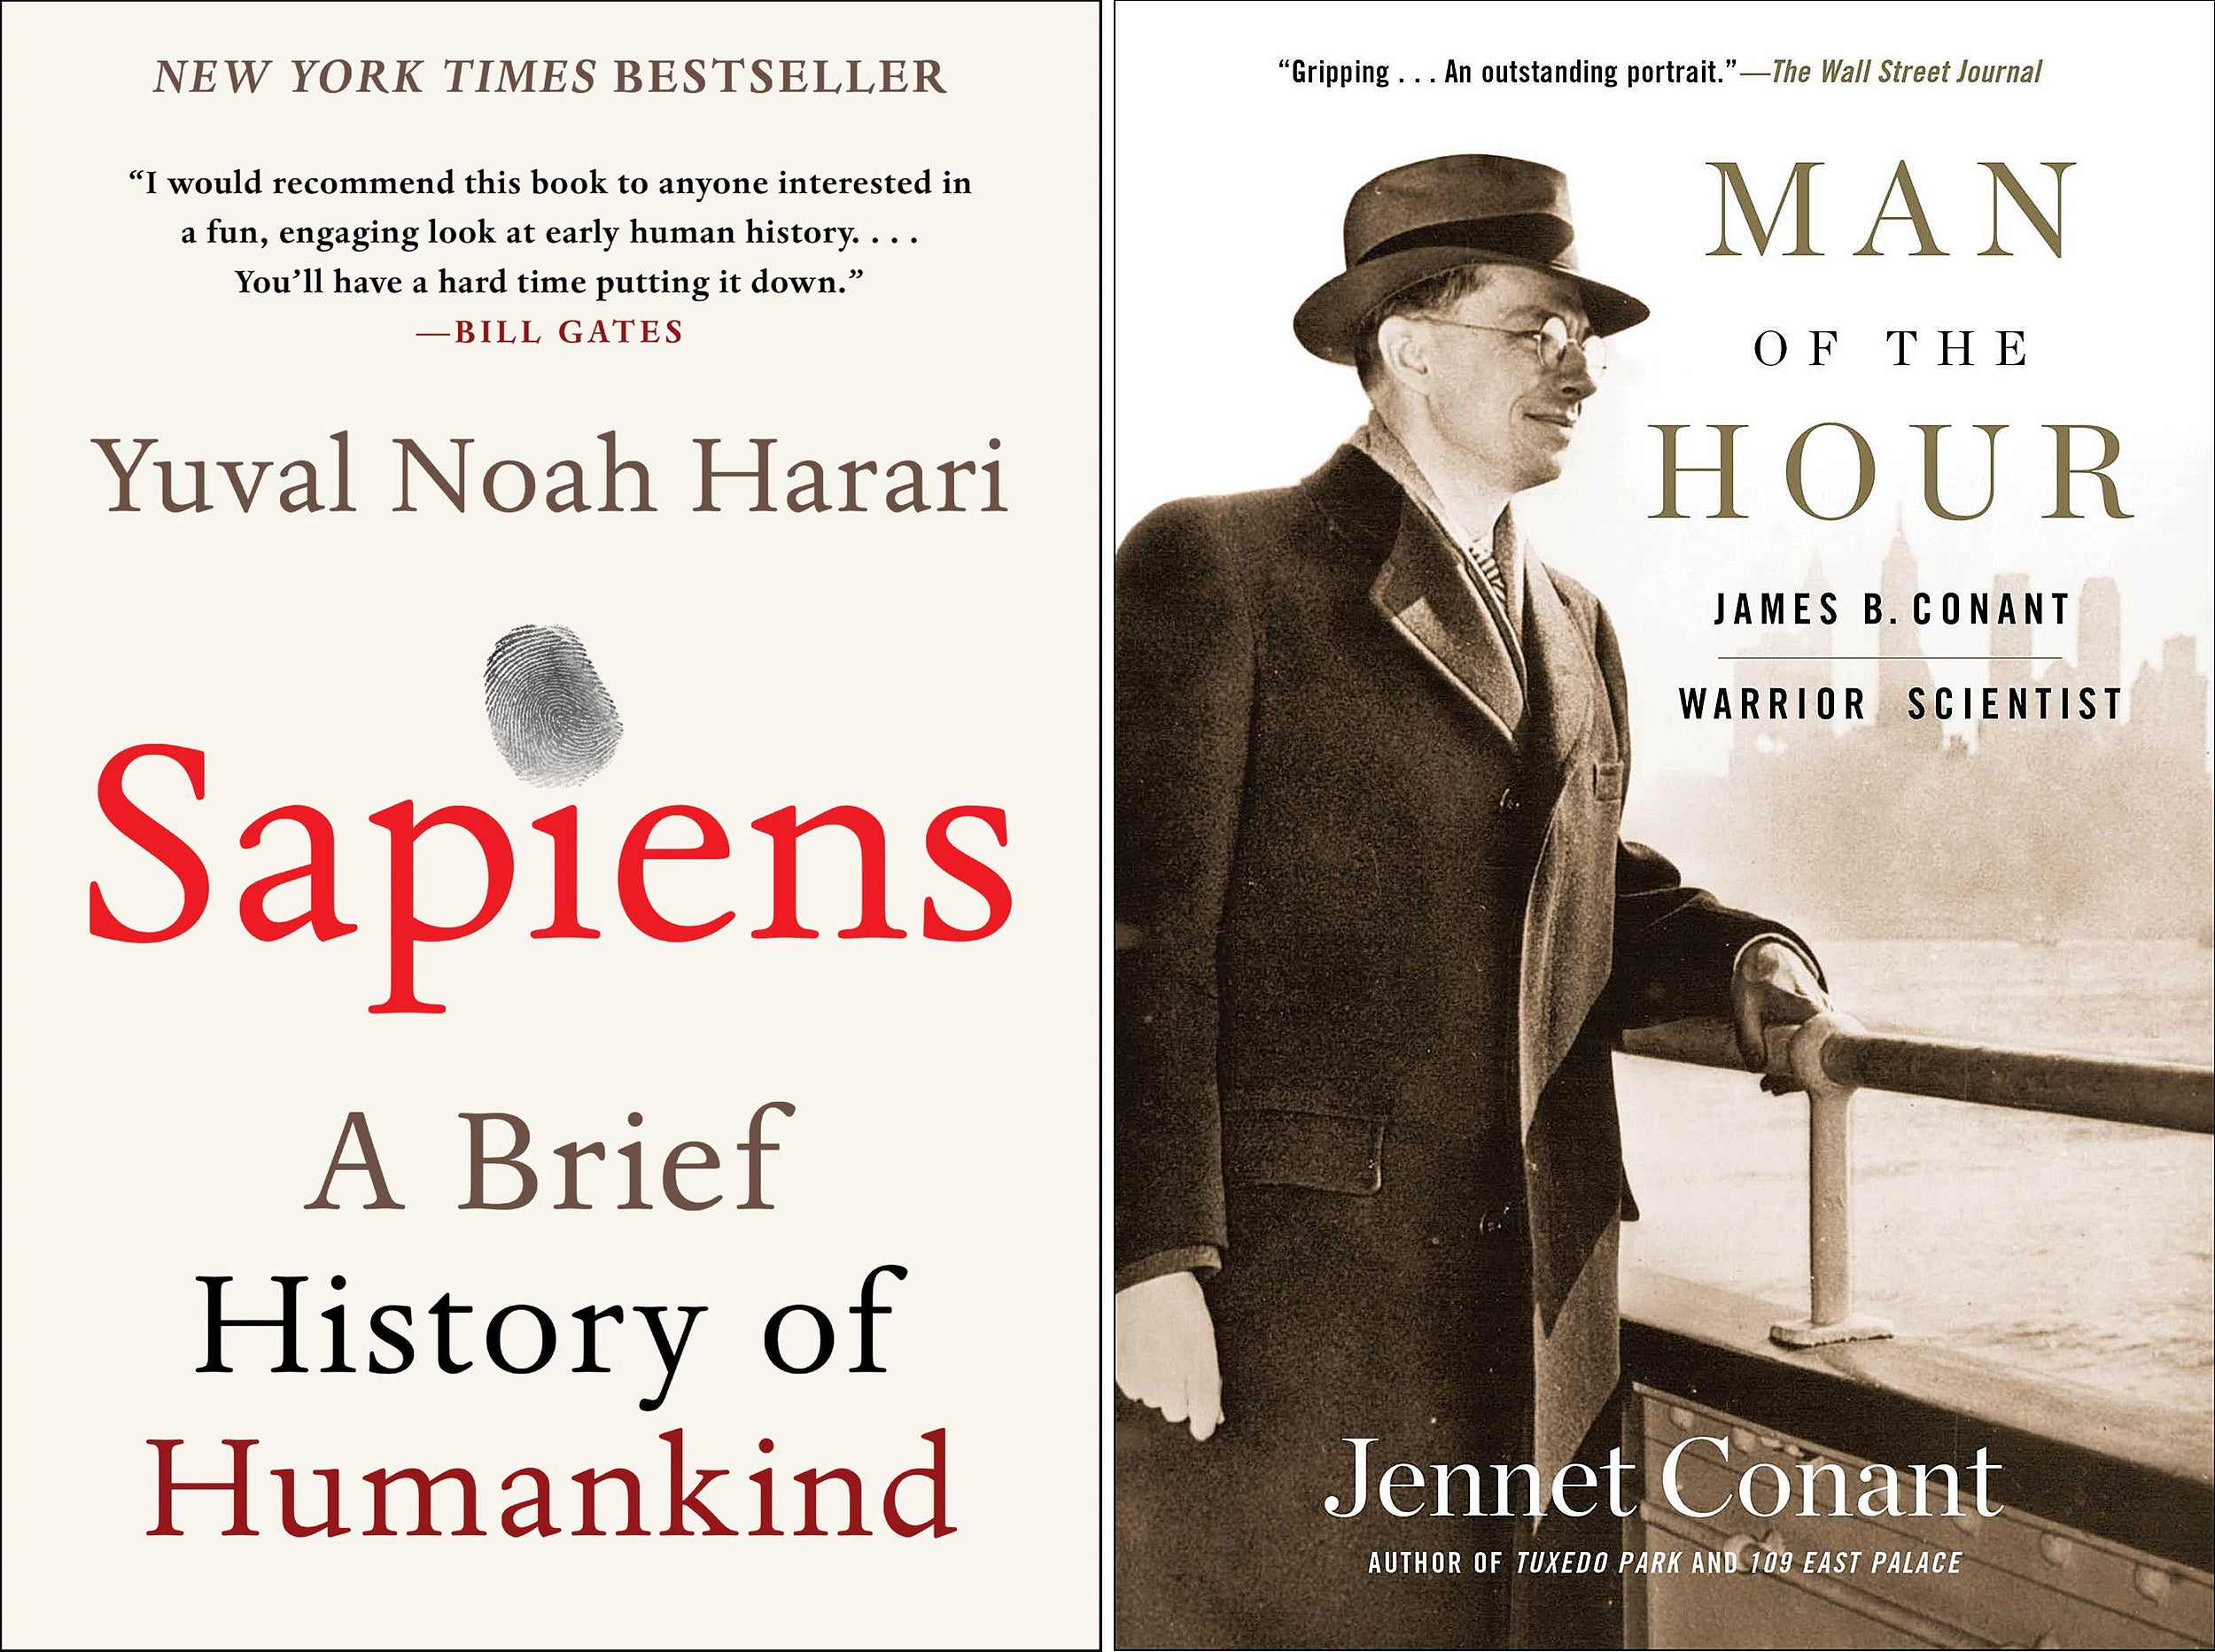 Sapiens and Man of the Hour book covers